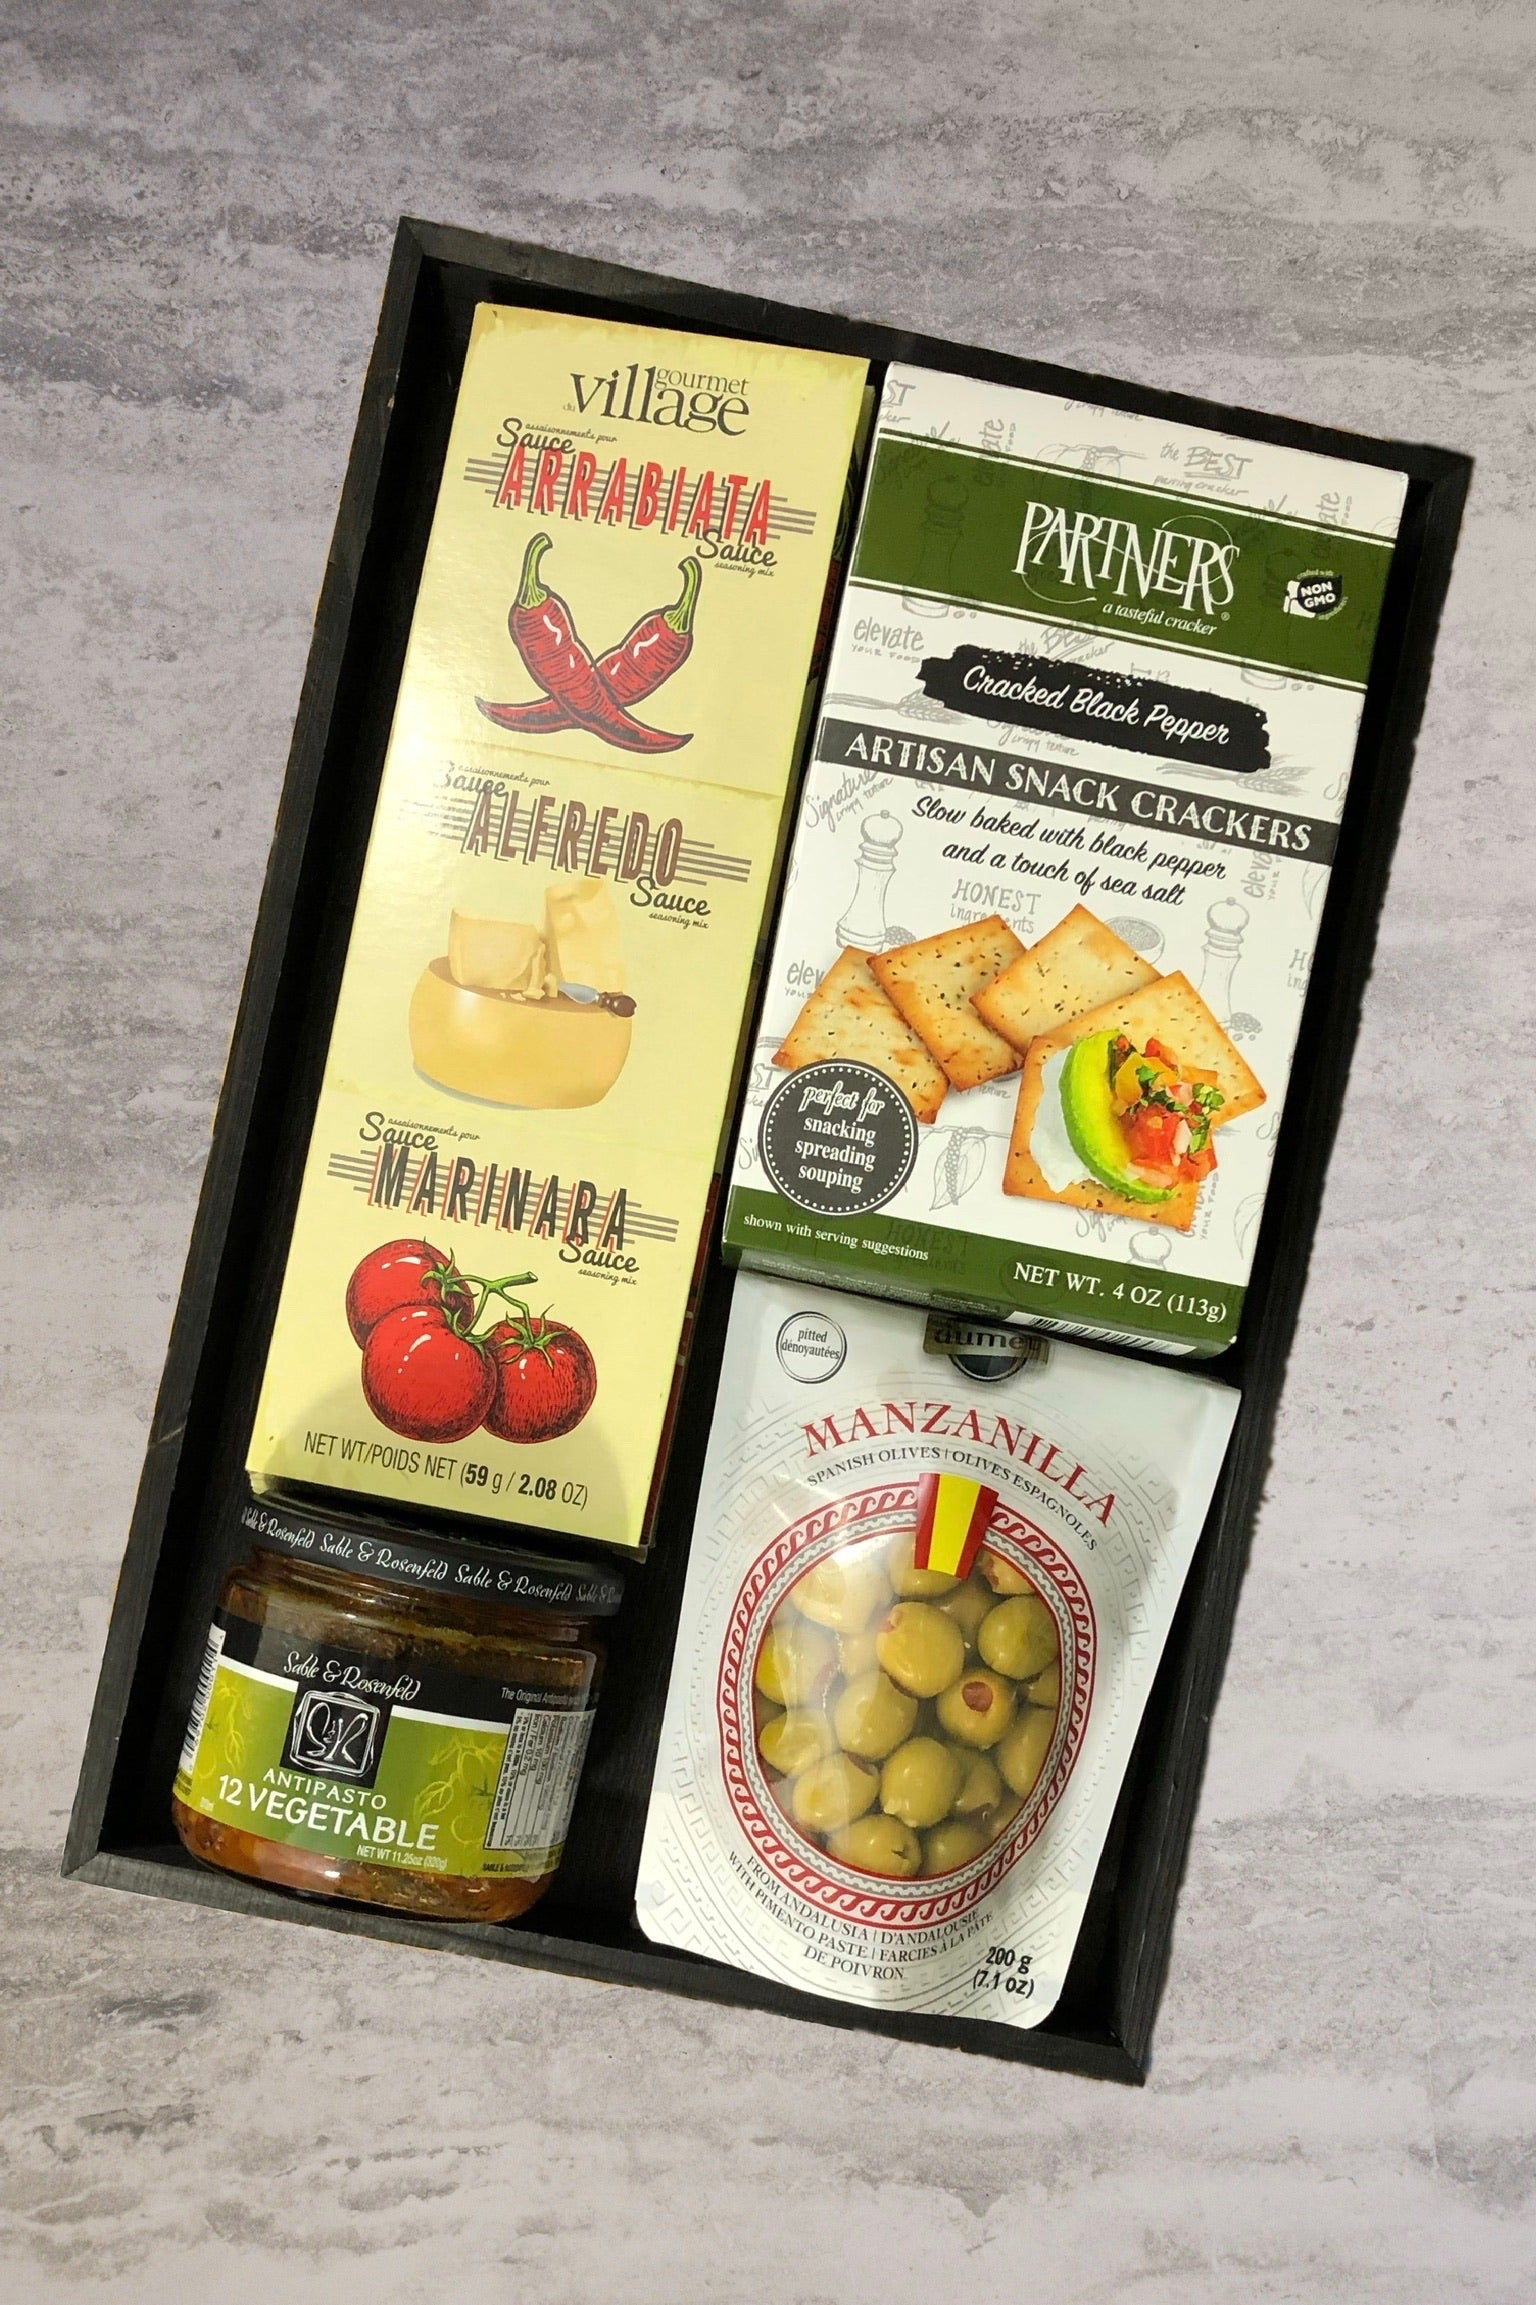 marinara sauce mix antipasto olives cheese crackers gift basket for him or her